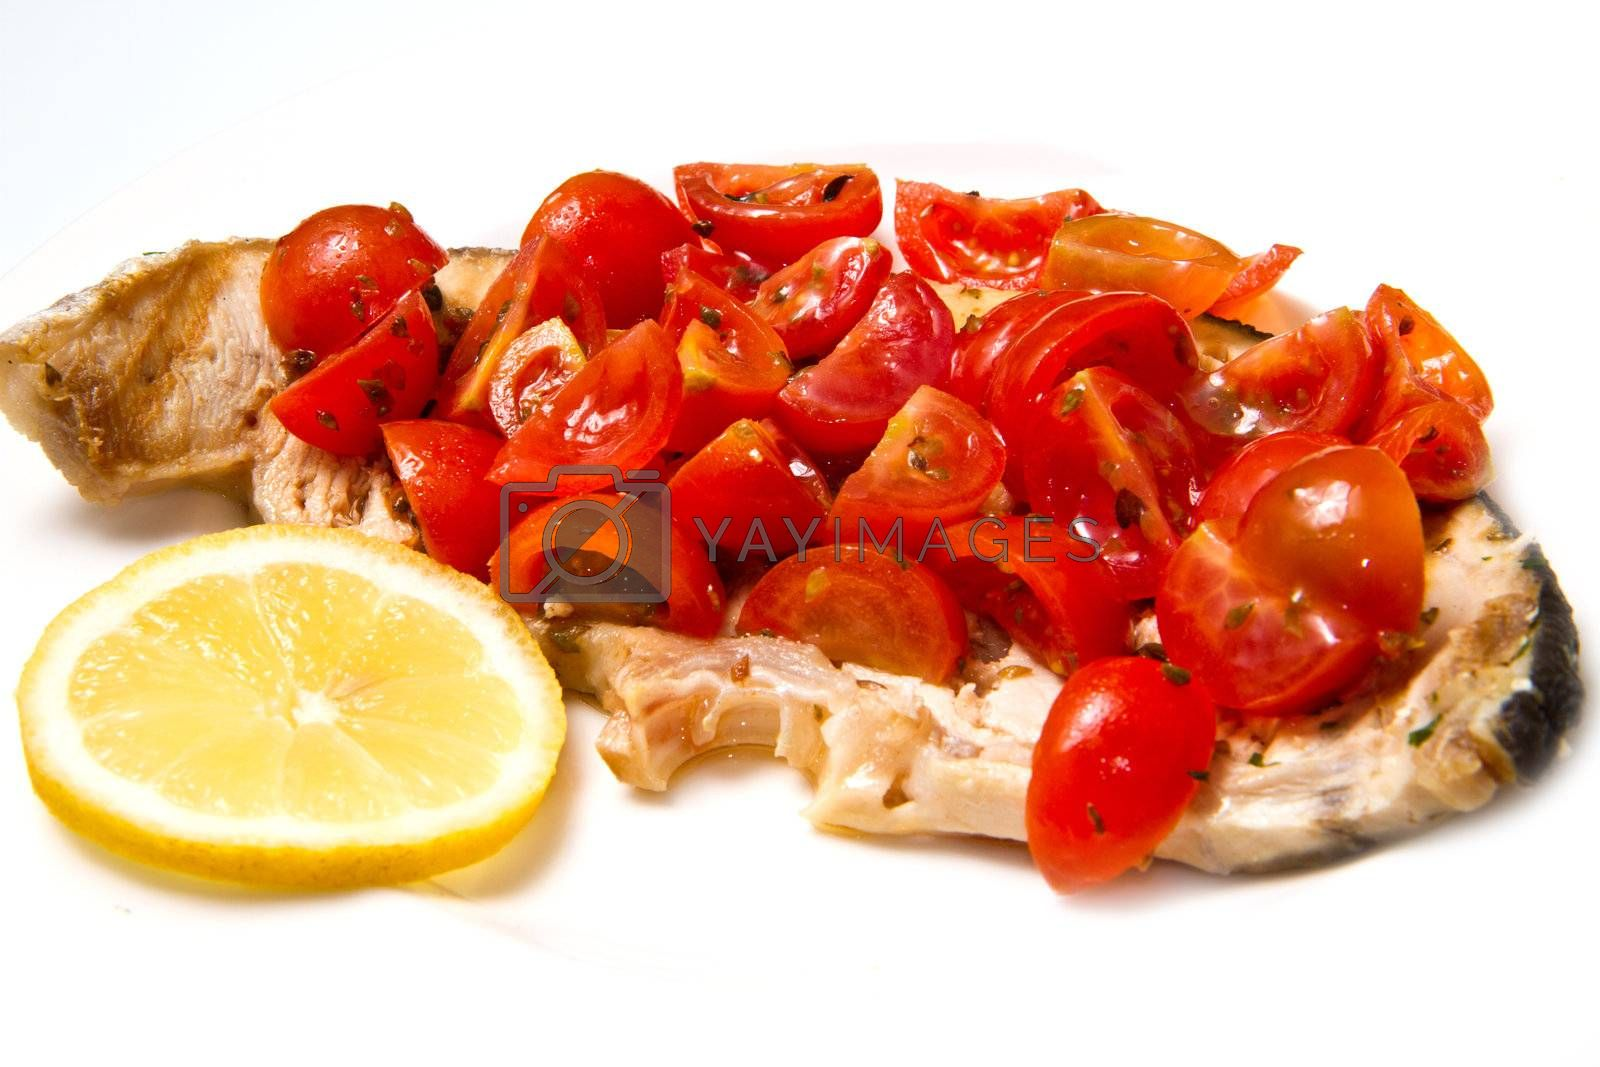 swordfish with tomatoes and lemon on white